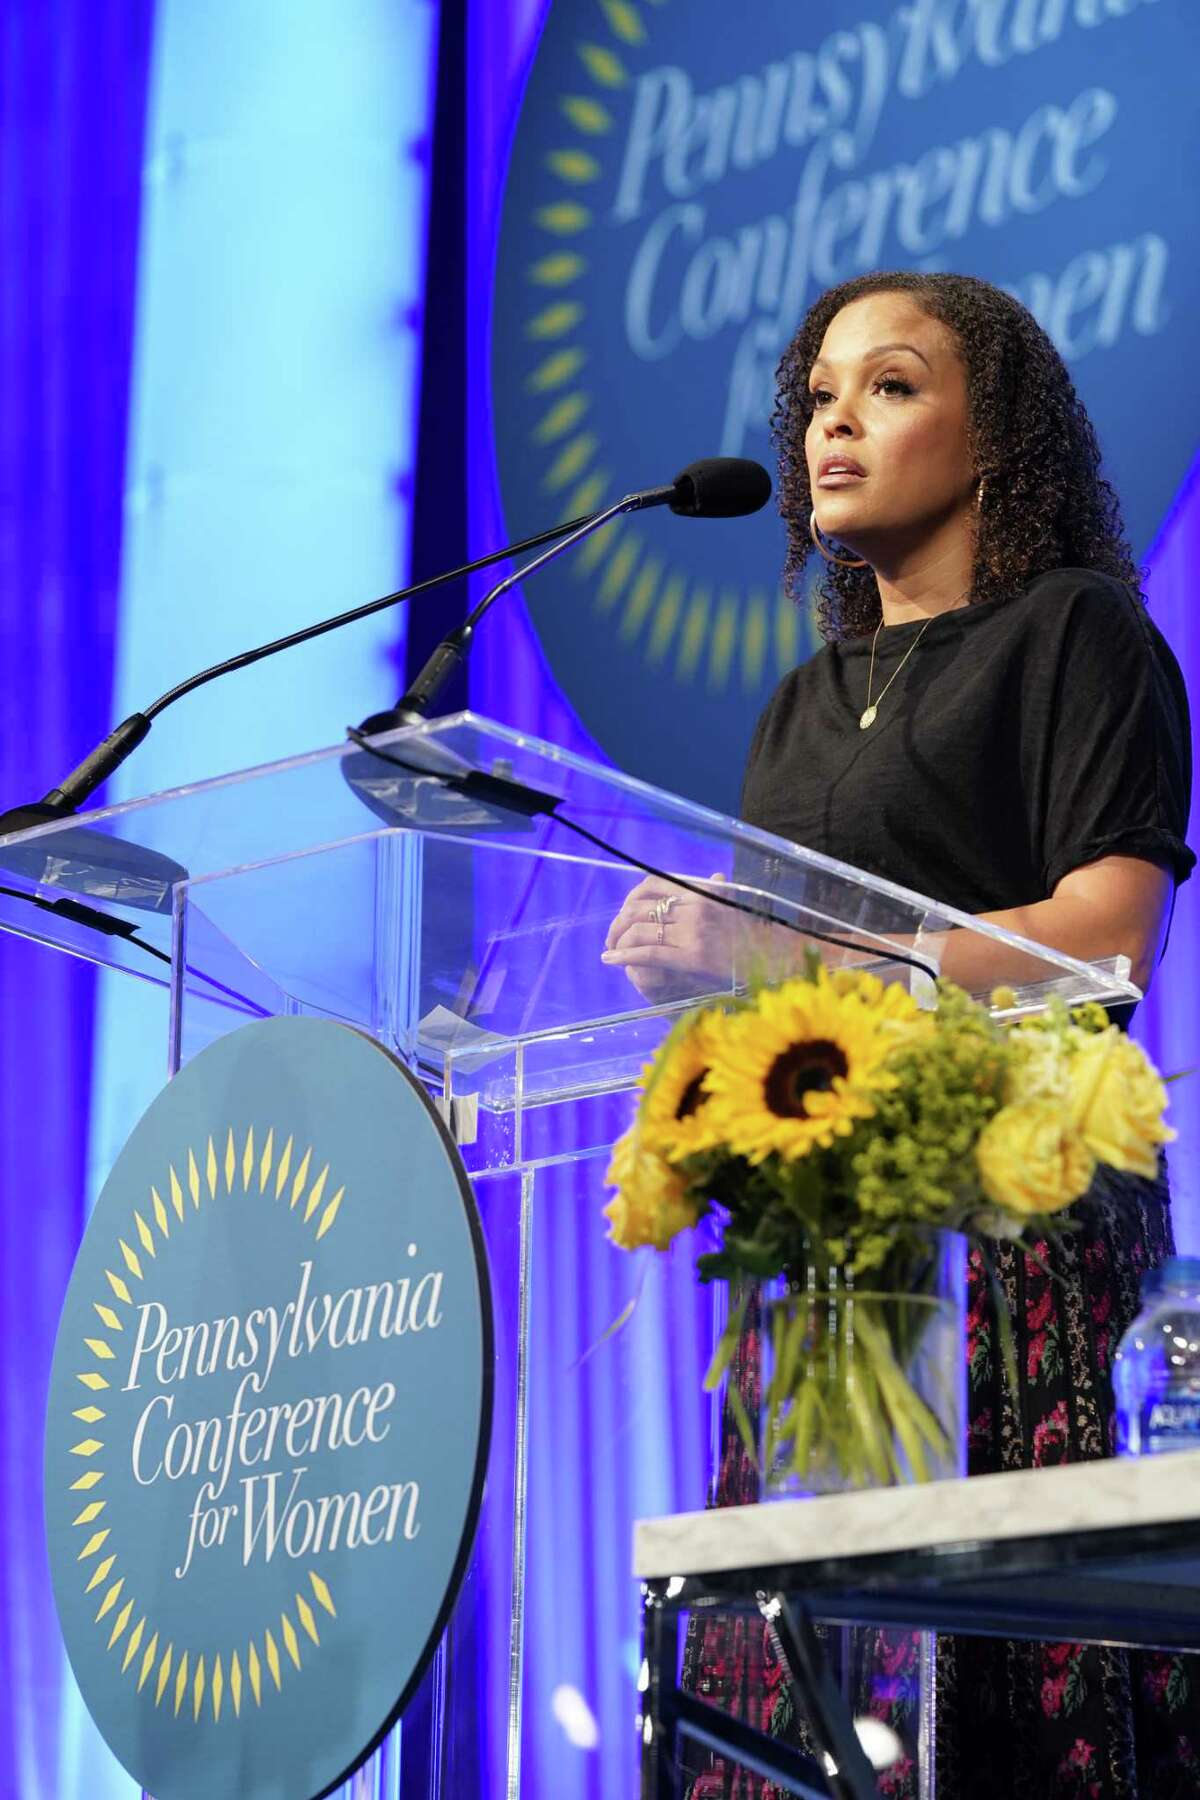 Jesmyn Ward, MacArthur Genius, two-time National Book Award winner, novelist, memoirist and essayist, speaks on stage during Pennsylvania Conference For Women 2019 at Pennsylvania Convention Center on October 02, 2019 in Philadelphia, Pennsylvania. (Photo by Marla Aufmuth/Getty Images for Pennsylvania Conference for Women 2019)